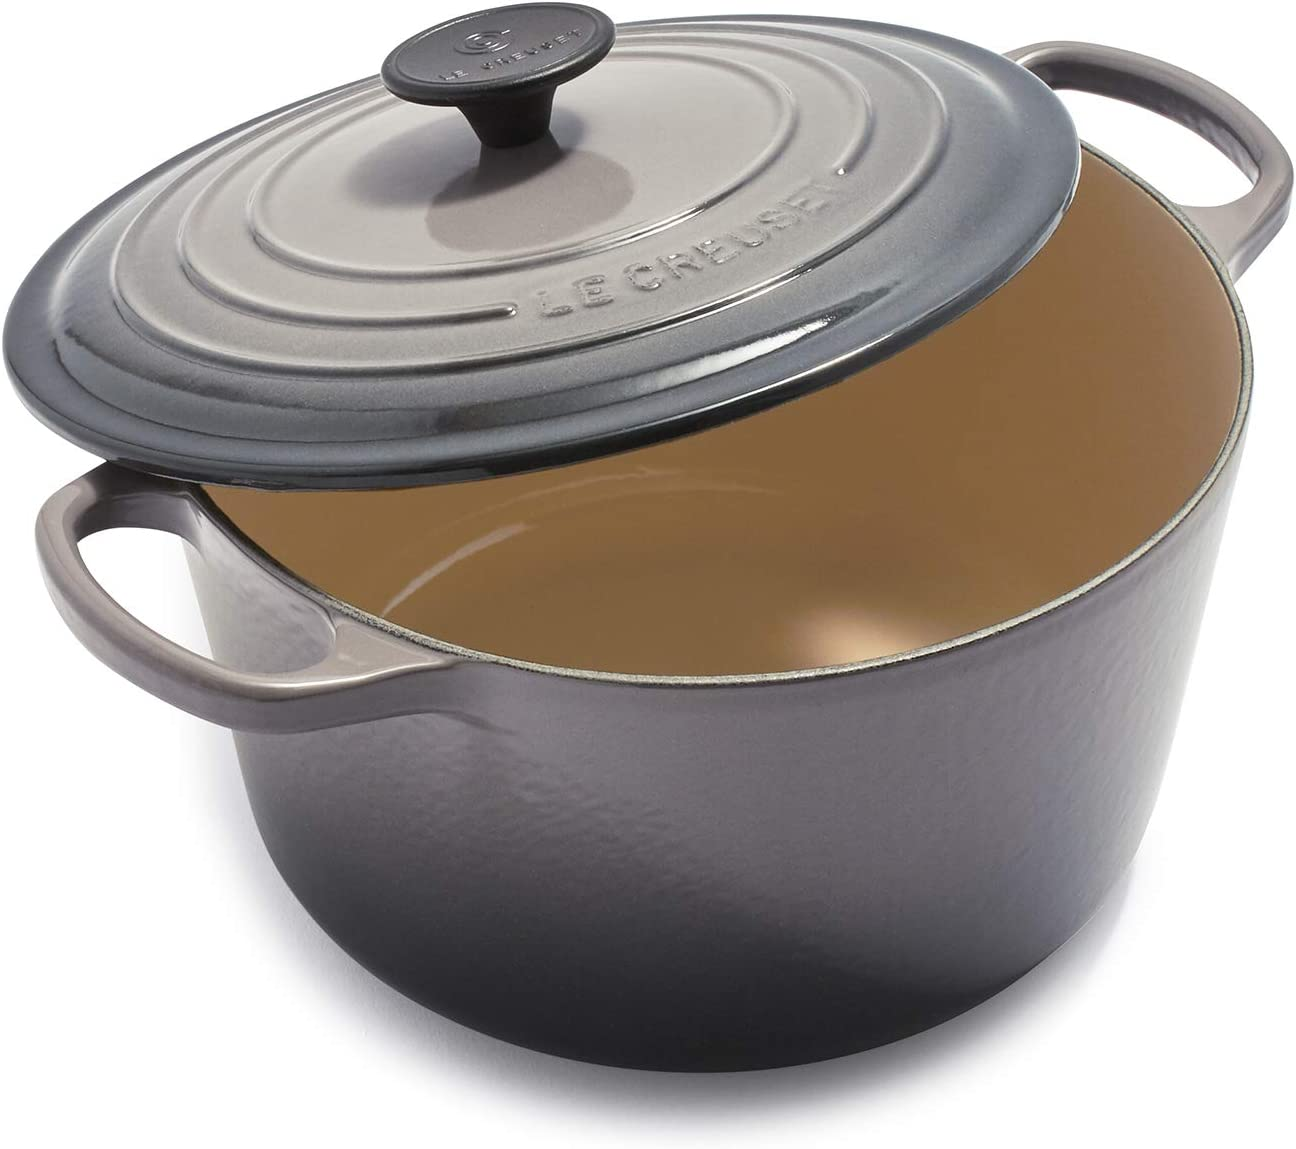 Le Creuset of America Le Creuset L2595-247F Enameled 5.25 Quart Deep Round, Oyster Cast Iron Dutch Oven, qt